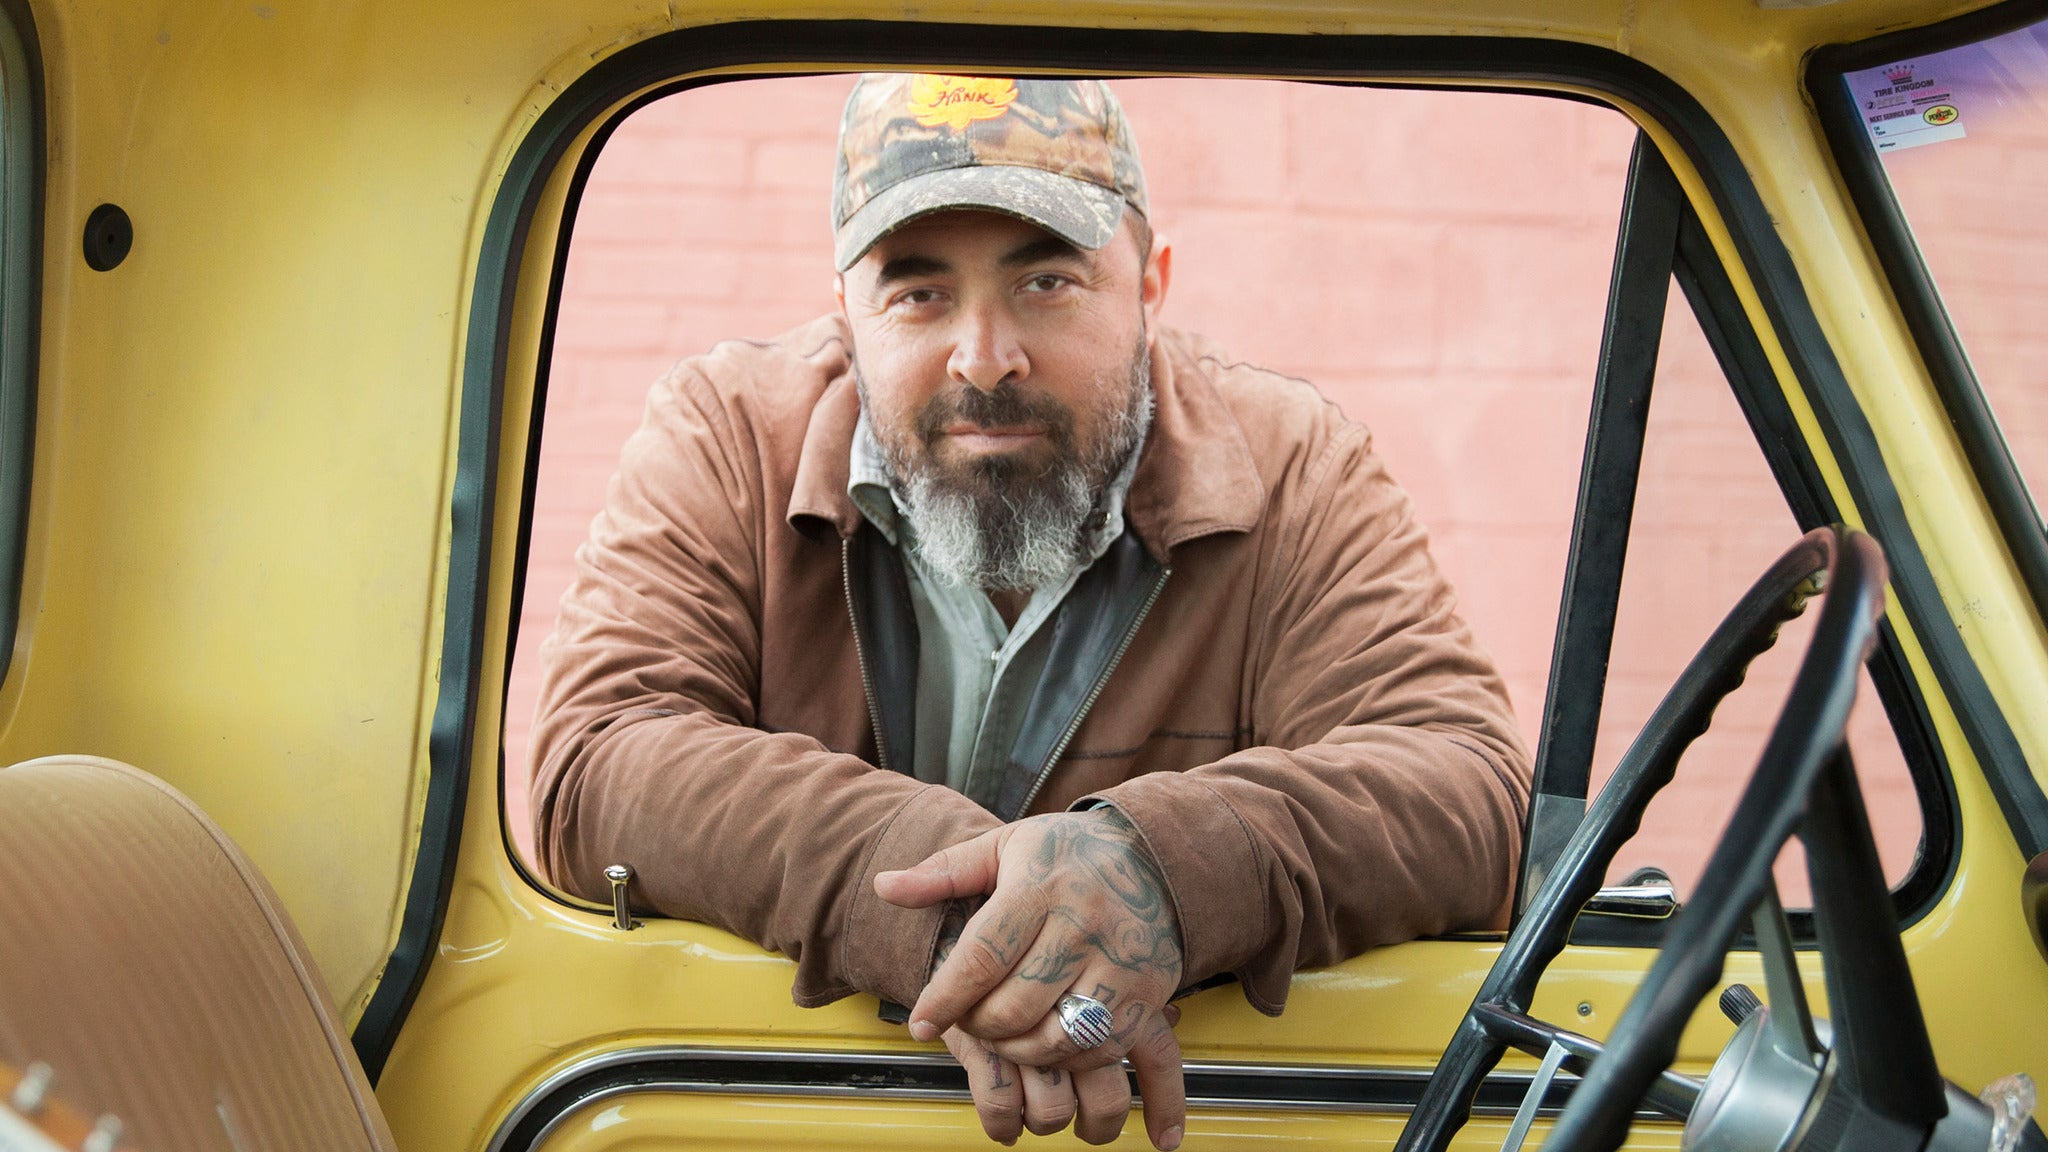 Aaron Lewis at The Texas Club